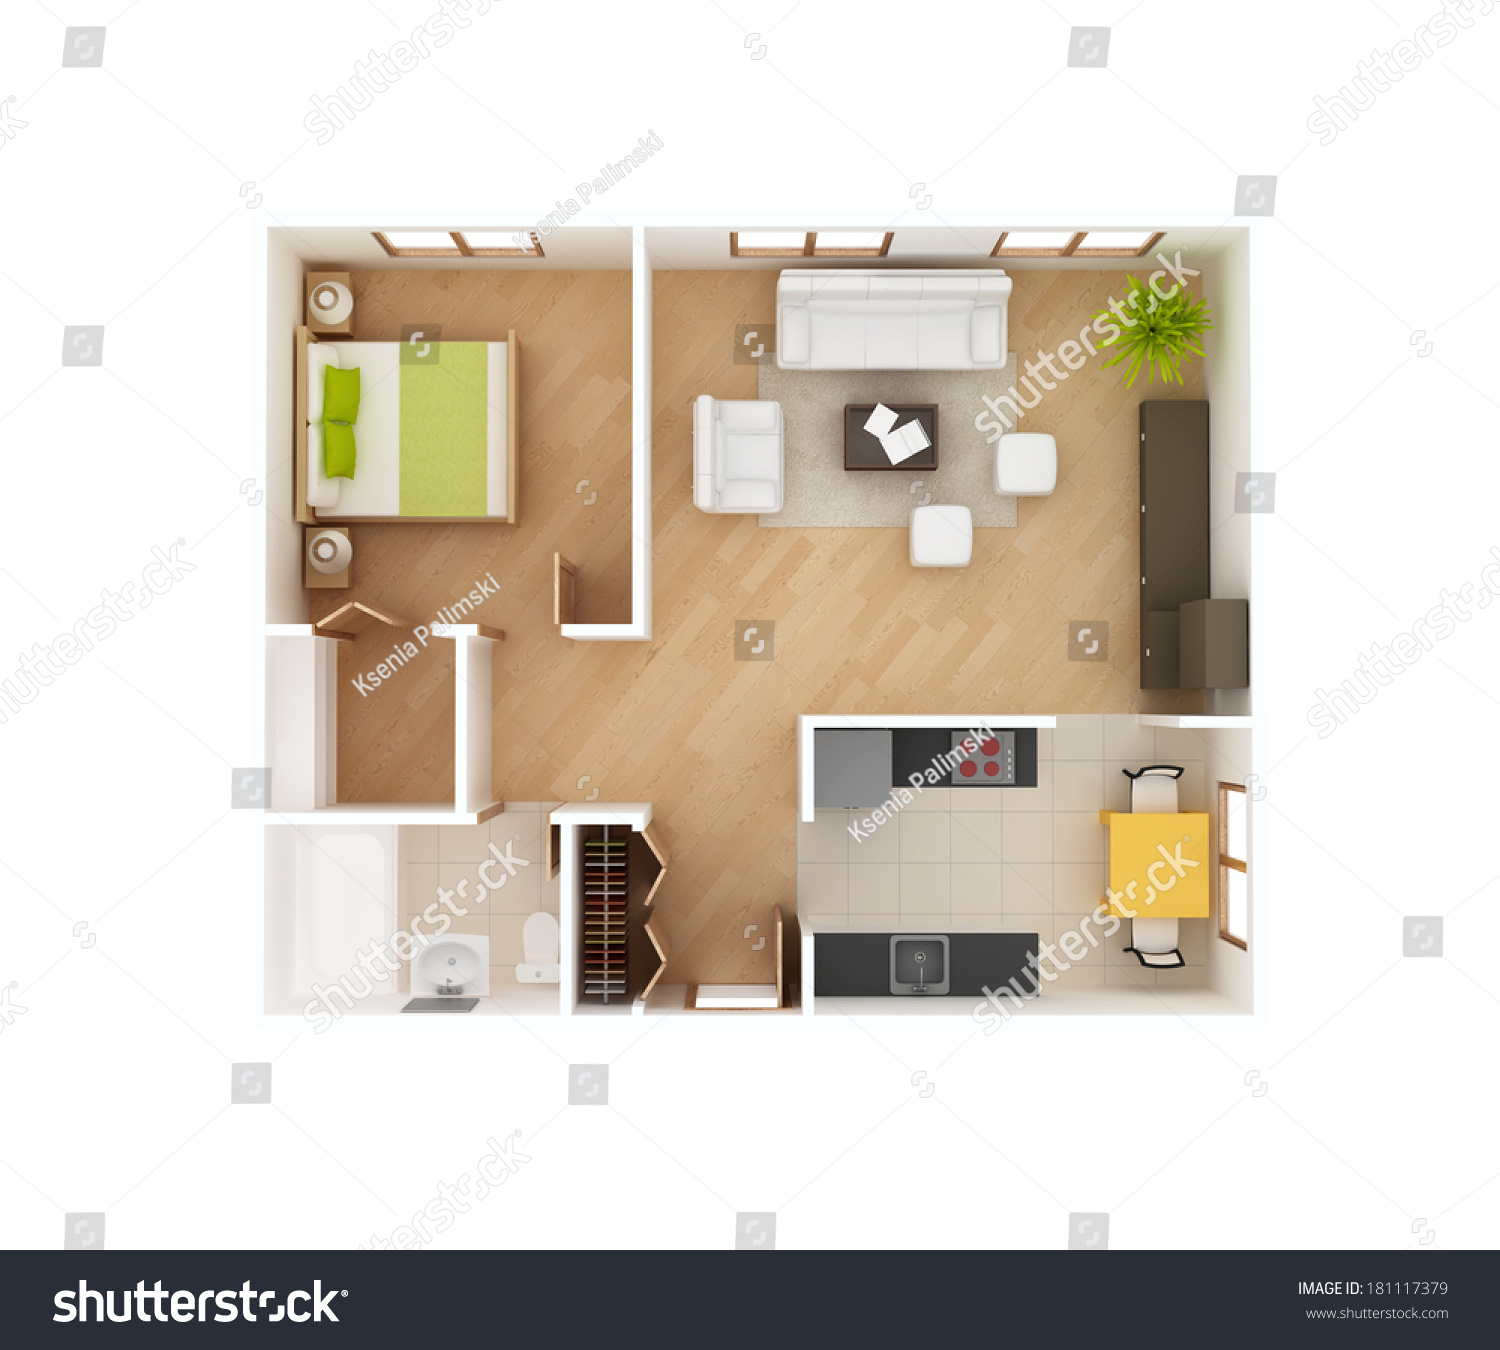 floor plans cross colonial inspiration floors house neat design for shaped of a pleasurable plan